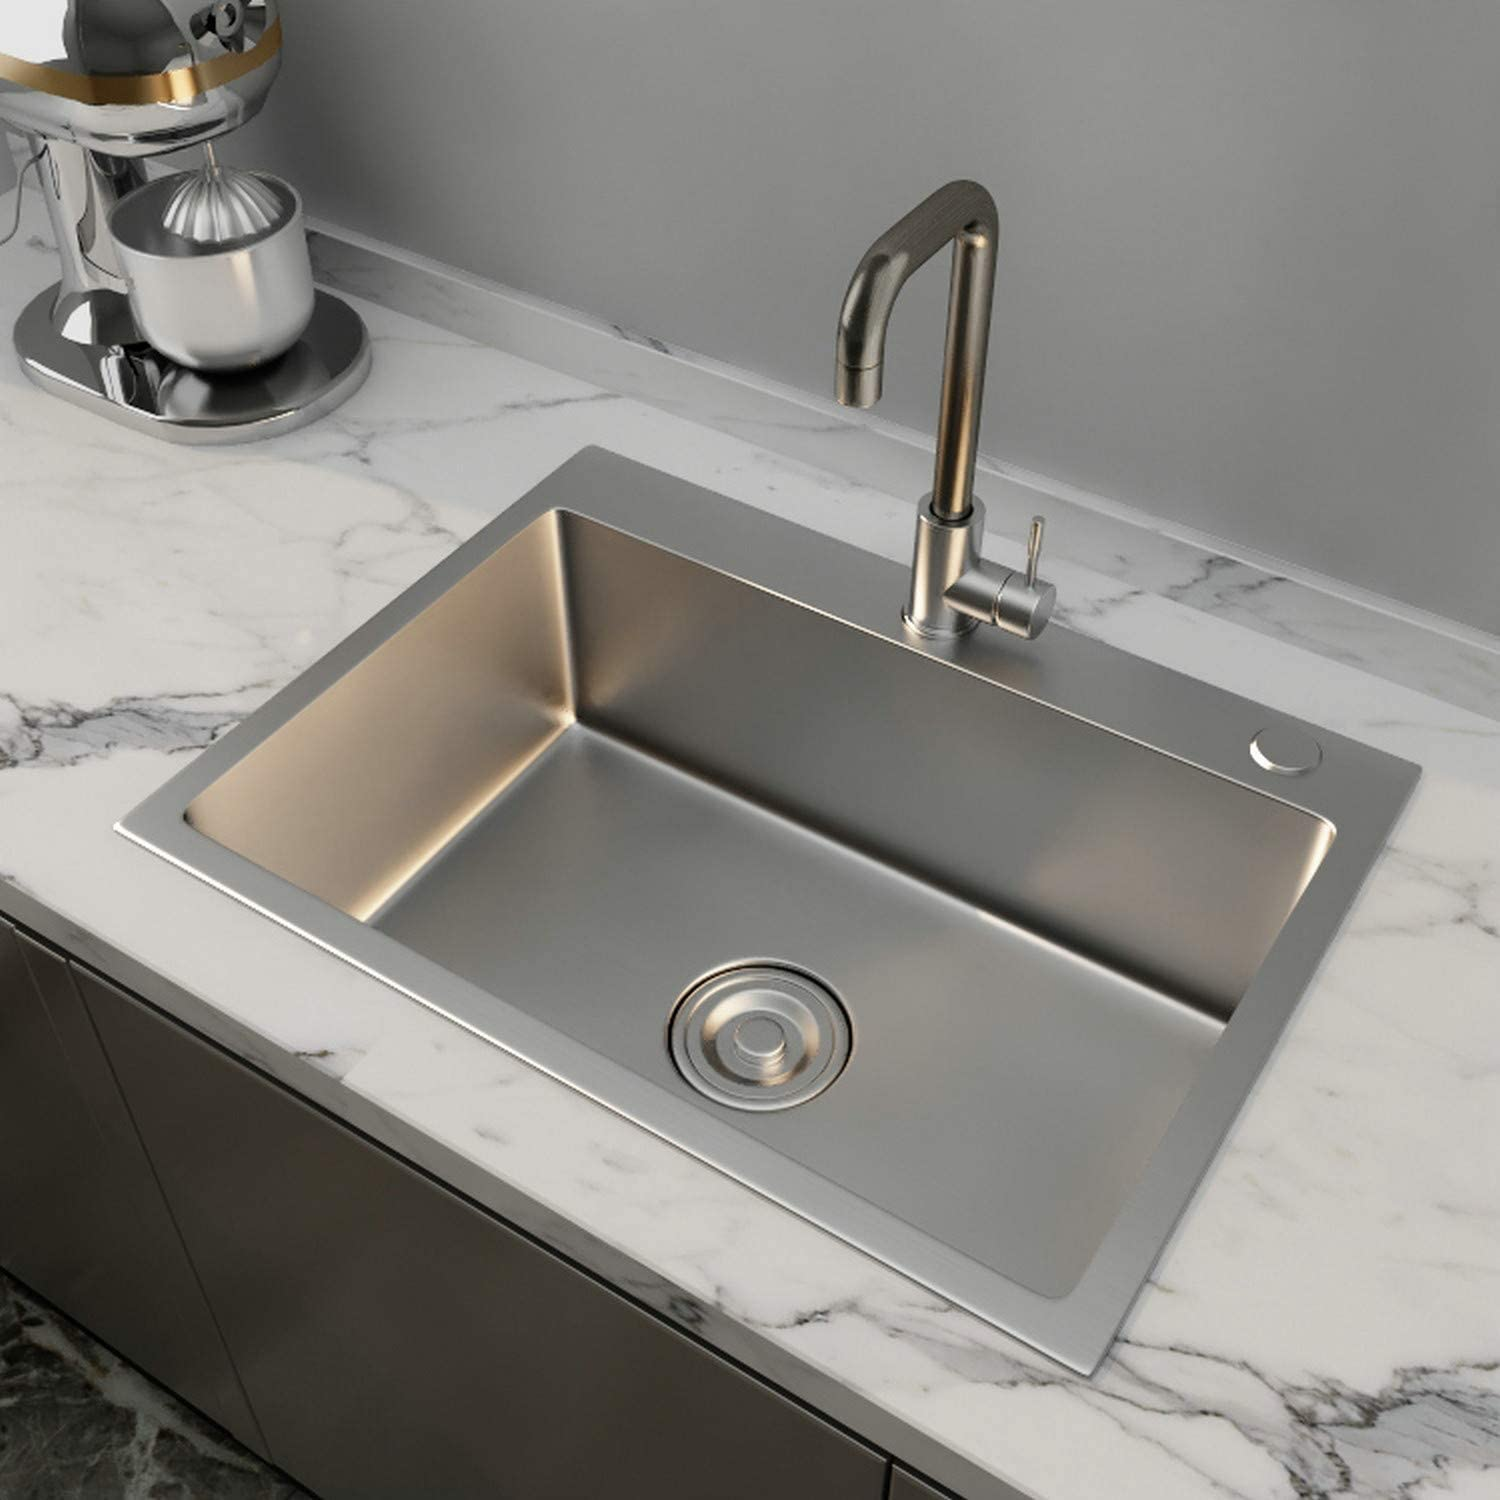 24x18 stainless steel kitchen sink include faucet drain 8 deep single bowl drop in